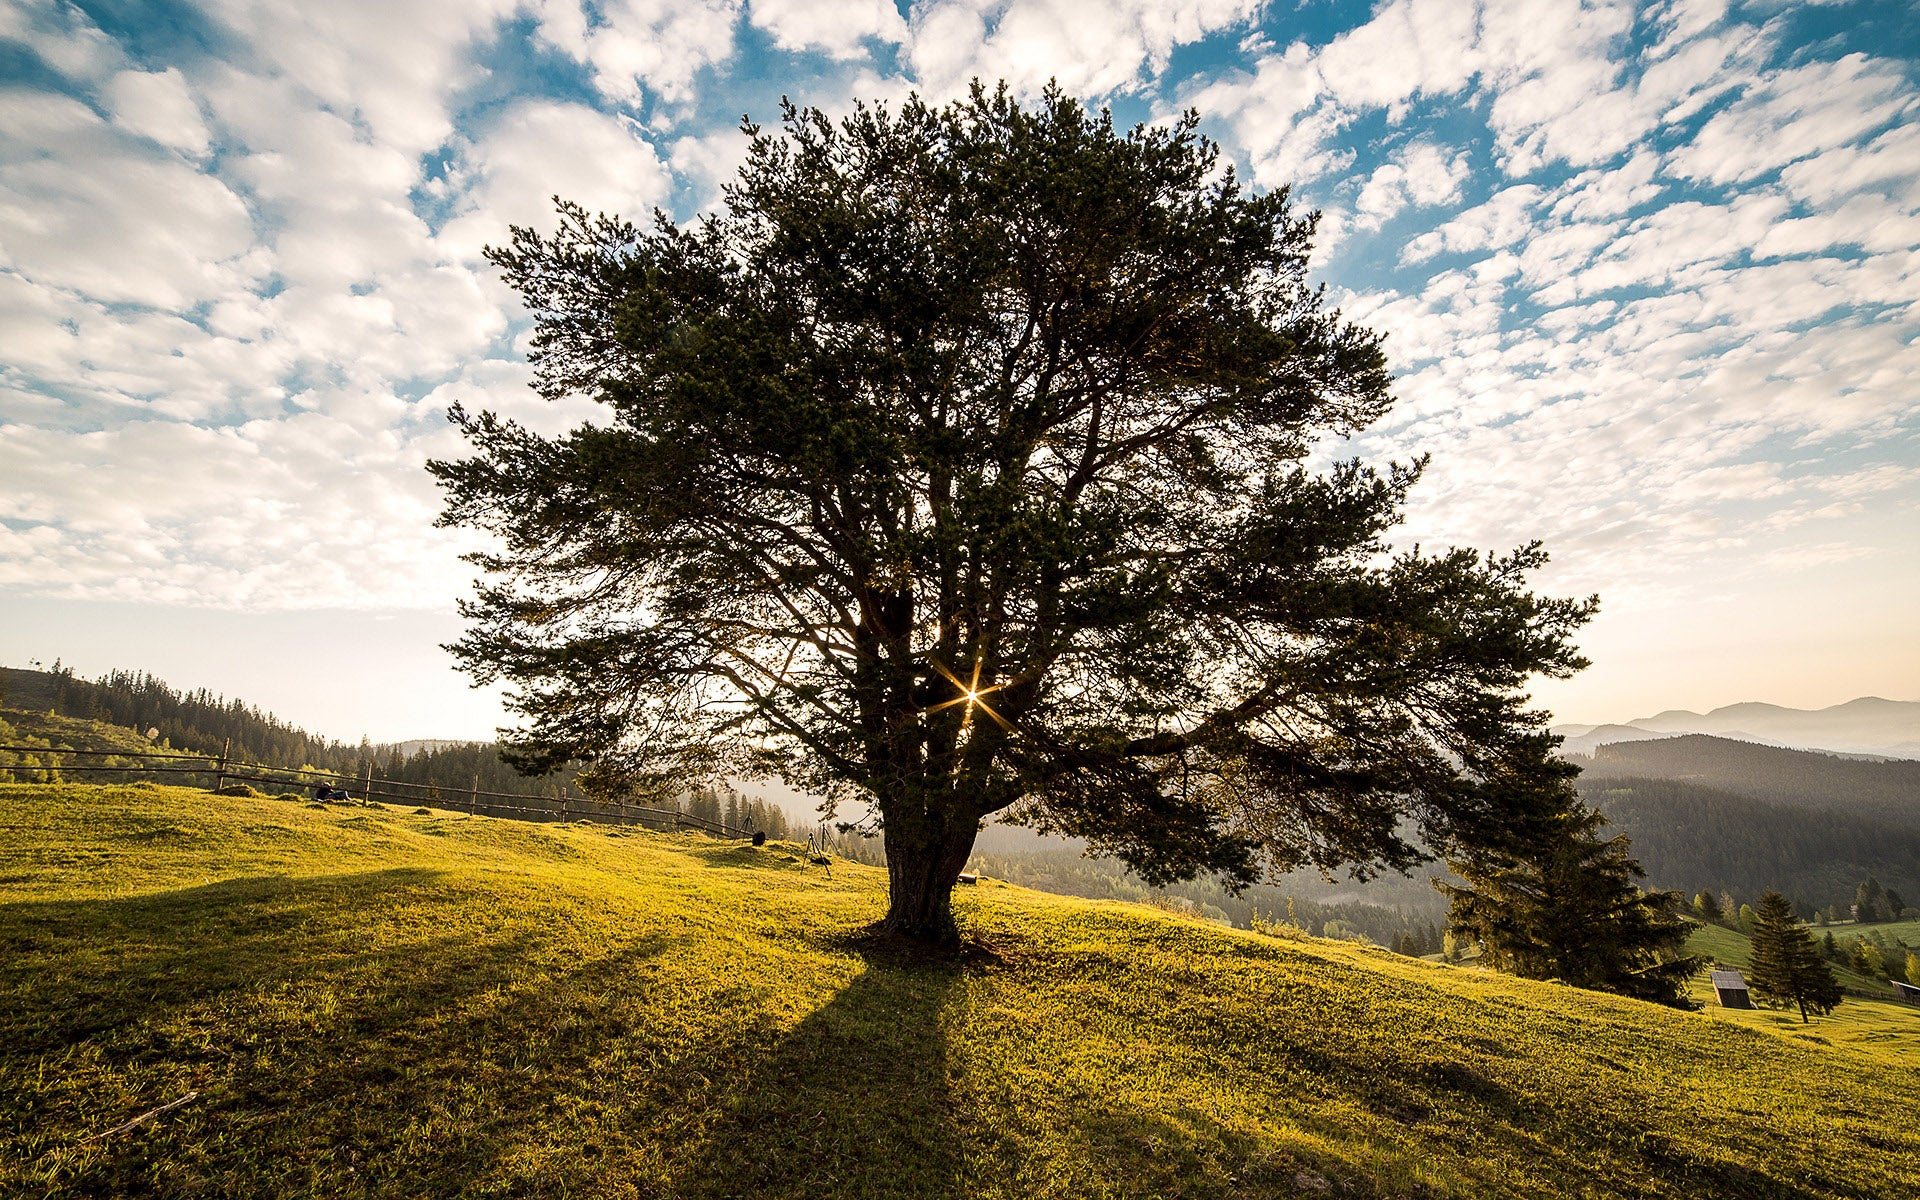 Beautiful tree on a hillside with sunlight, sky, and clouds in background